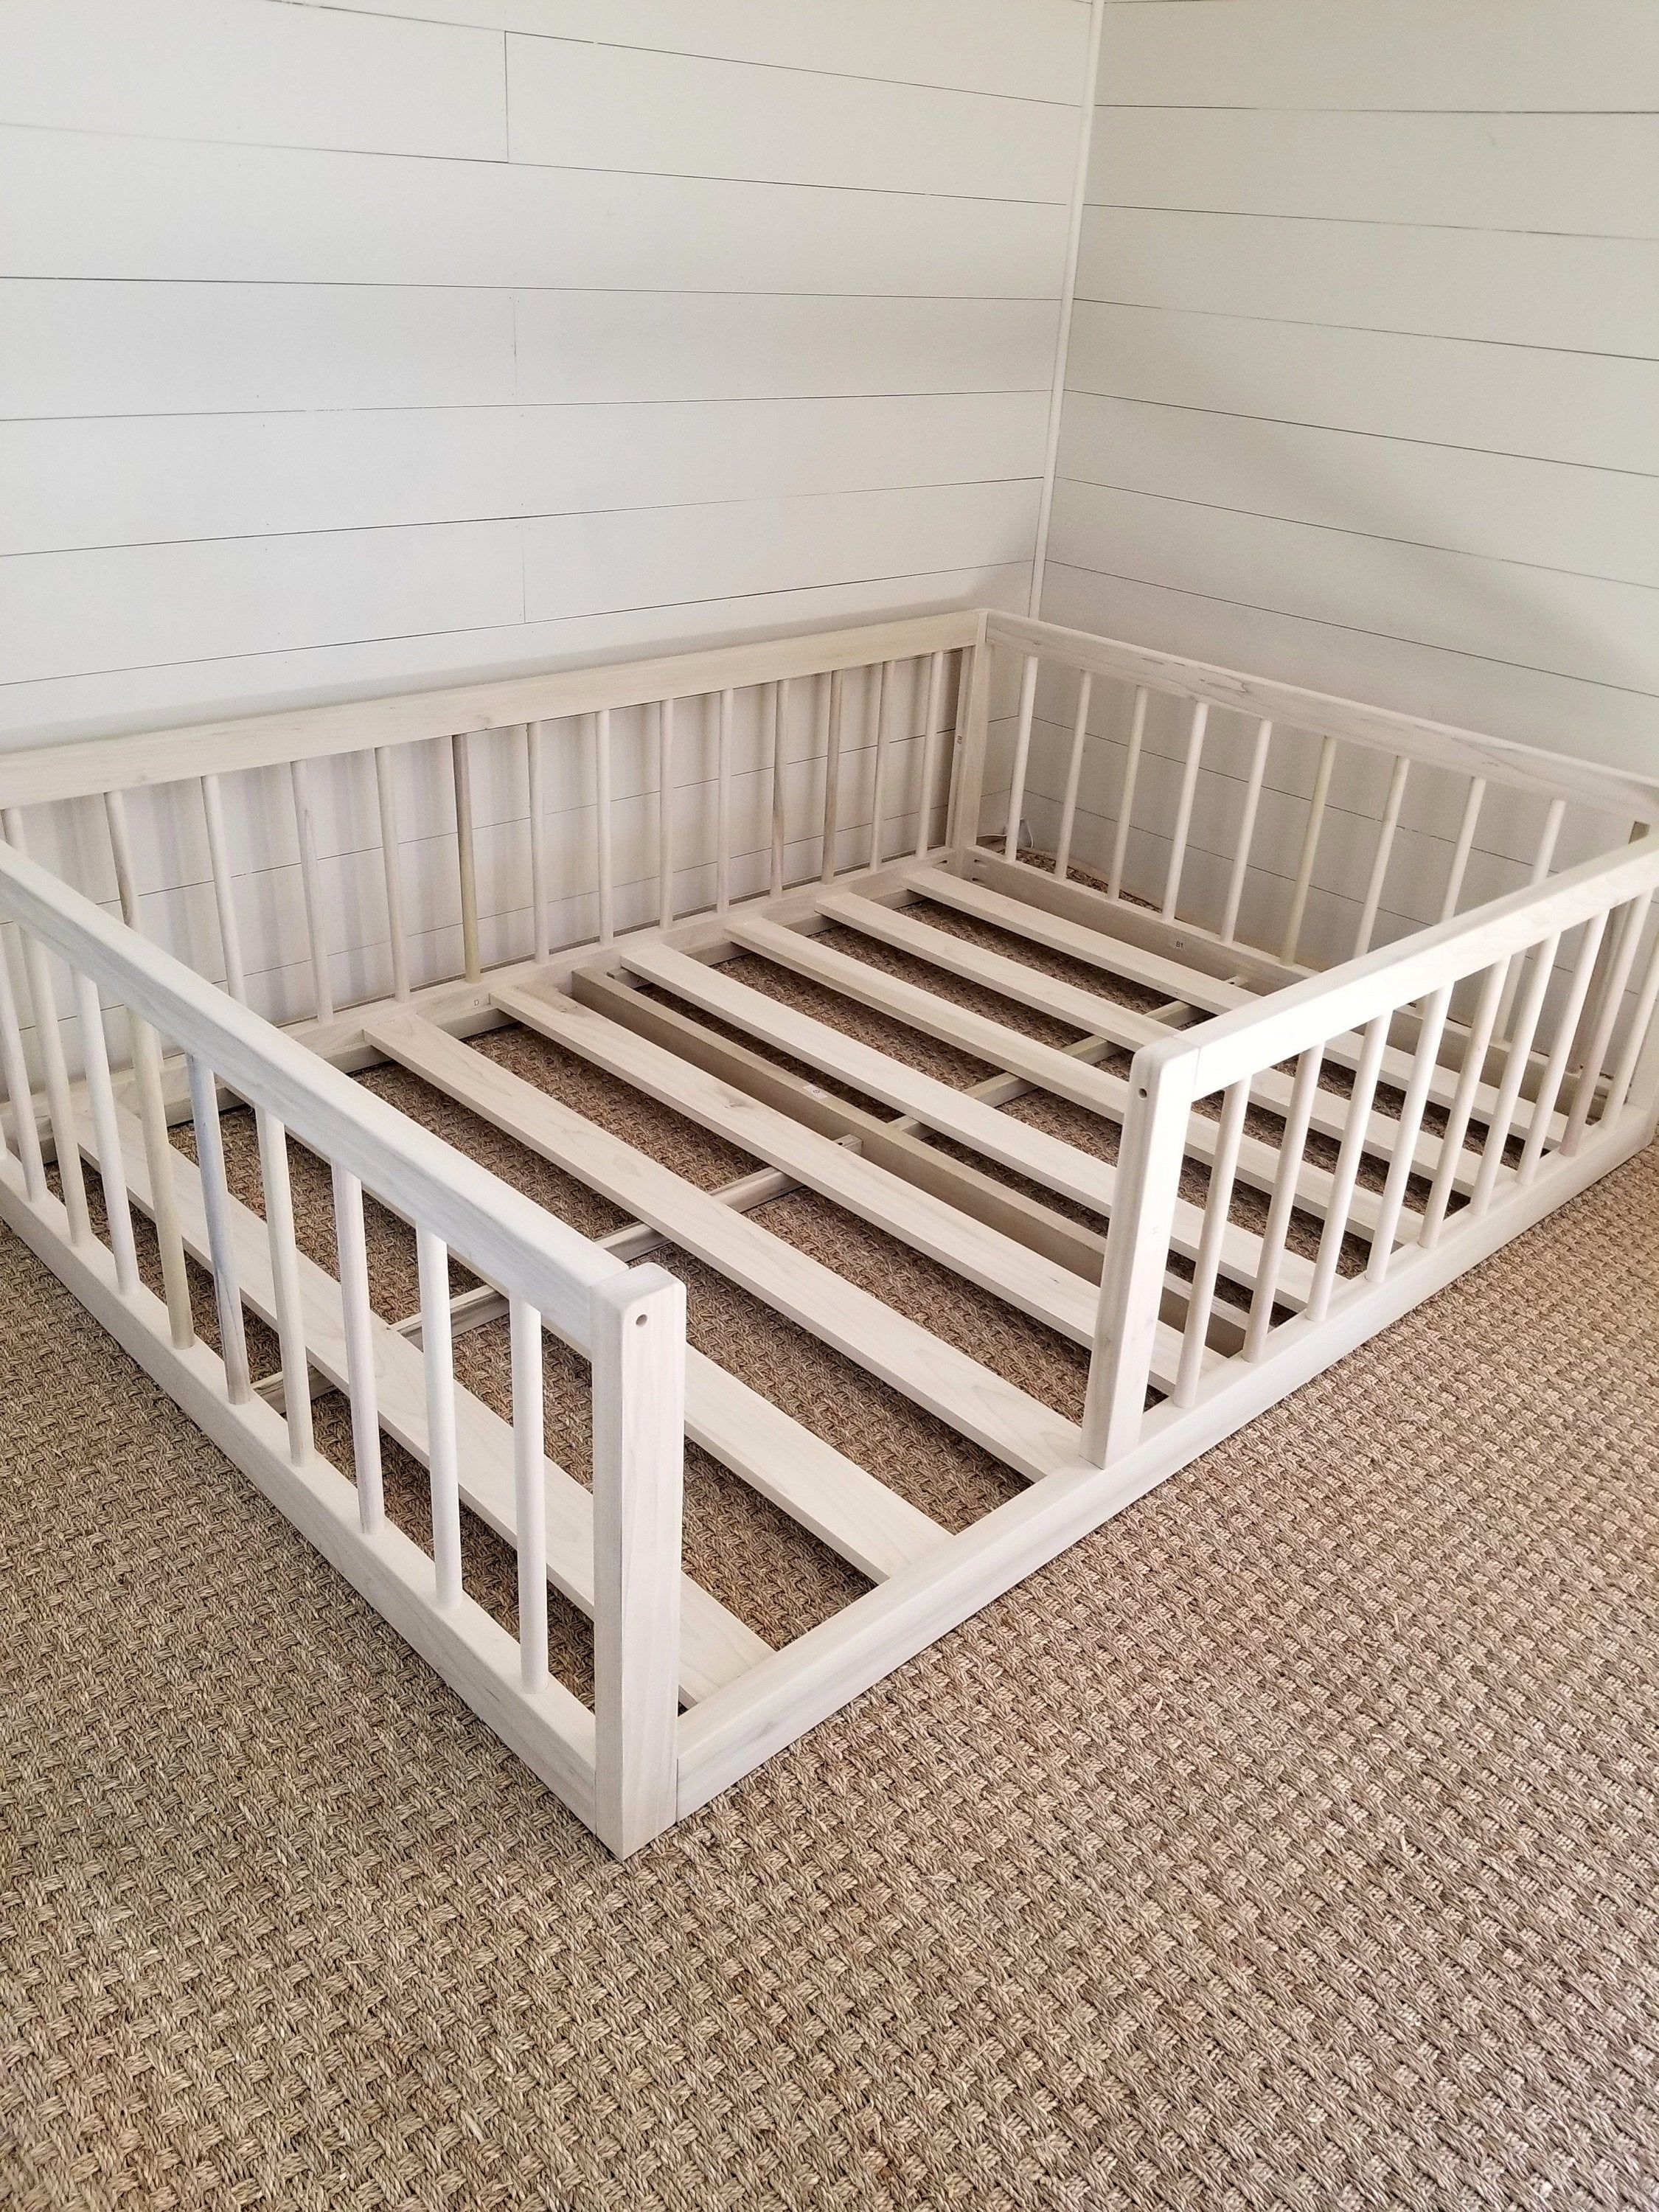 Montessori Floor Bed With Rails Full Or Double Size Floor Bed Hardwood Made In Usa Includes Slats Toddler Floor